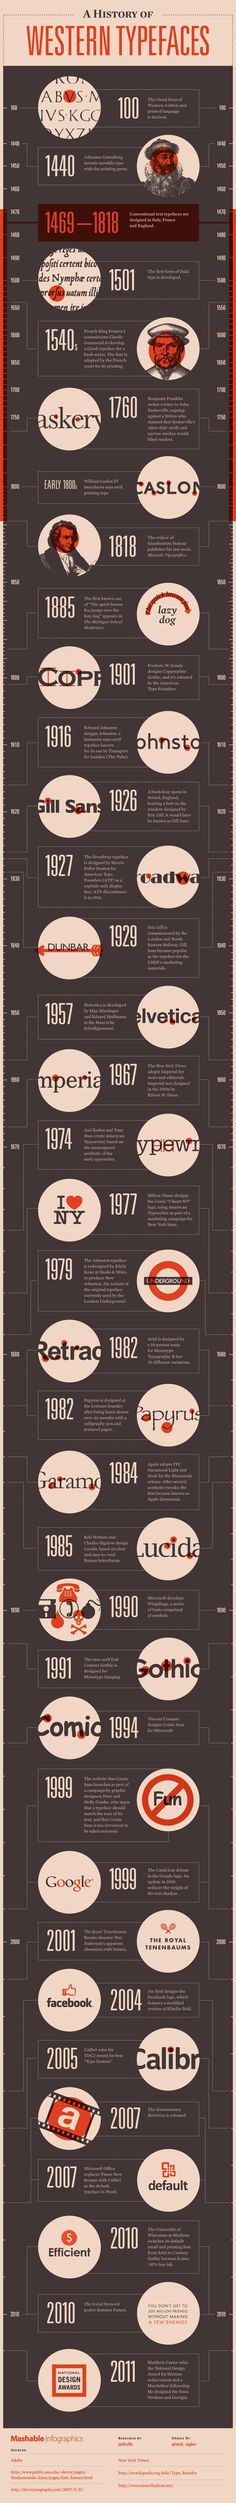 The History of Western Typefaces